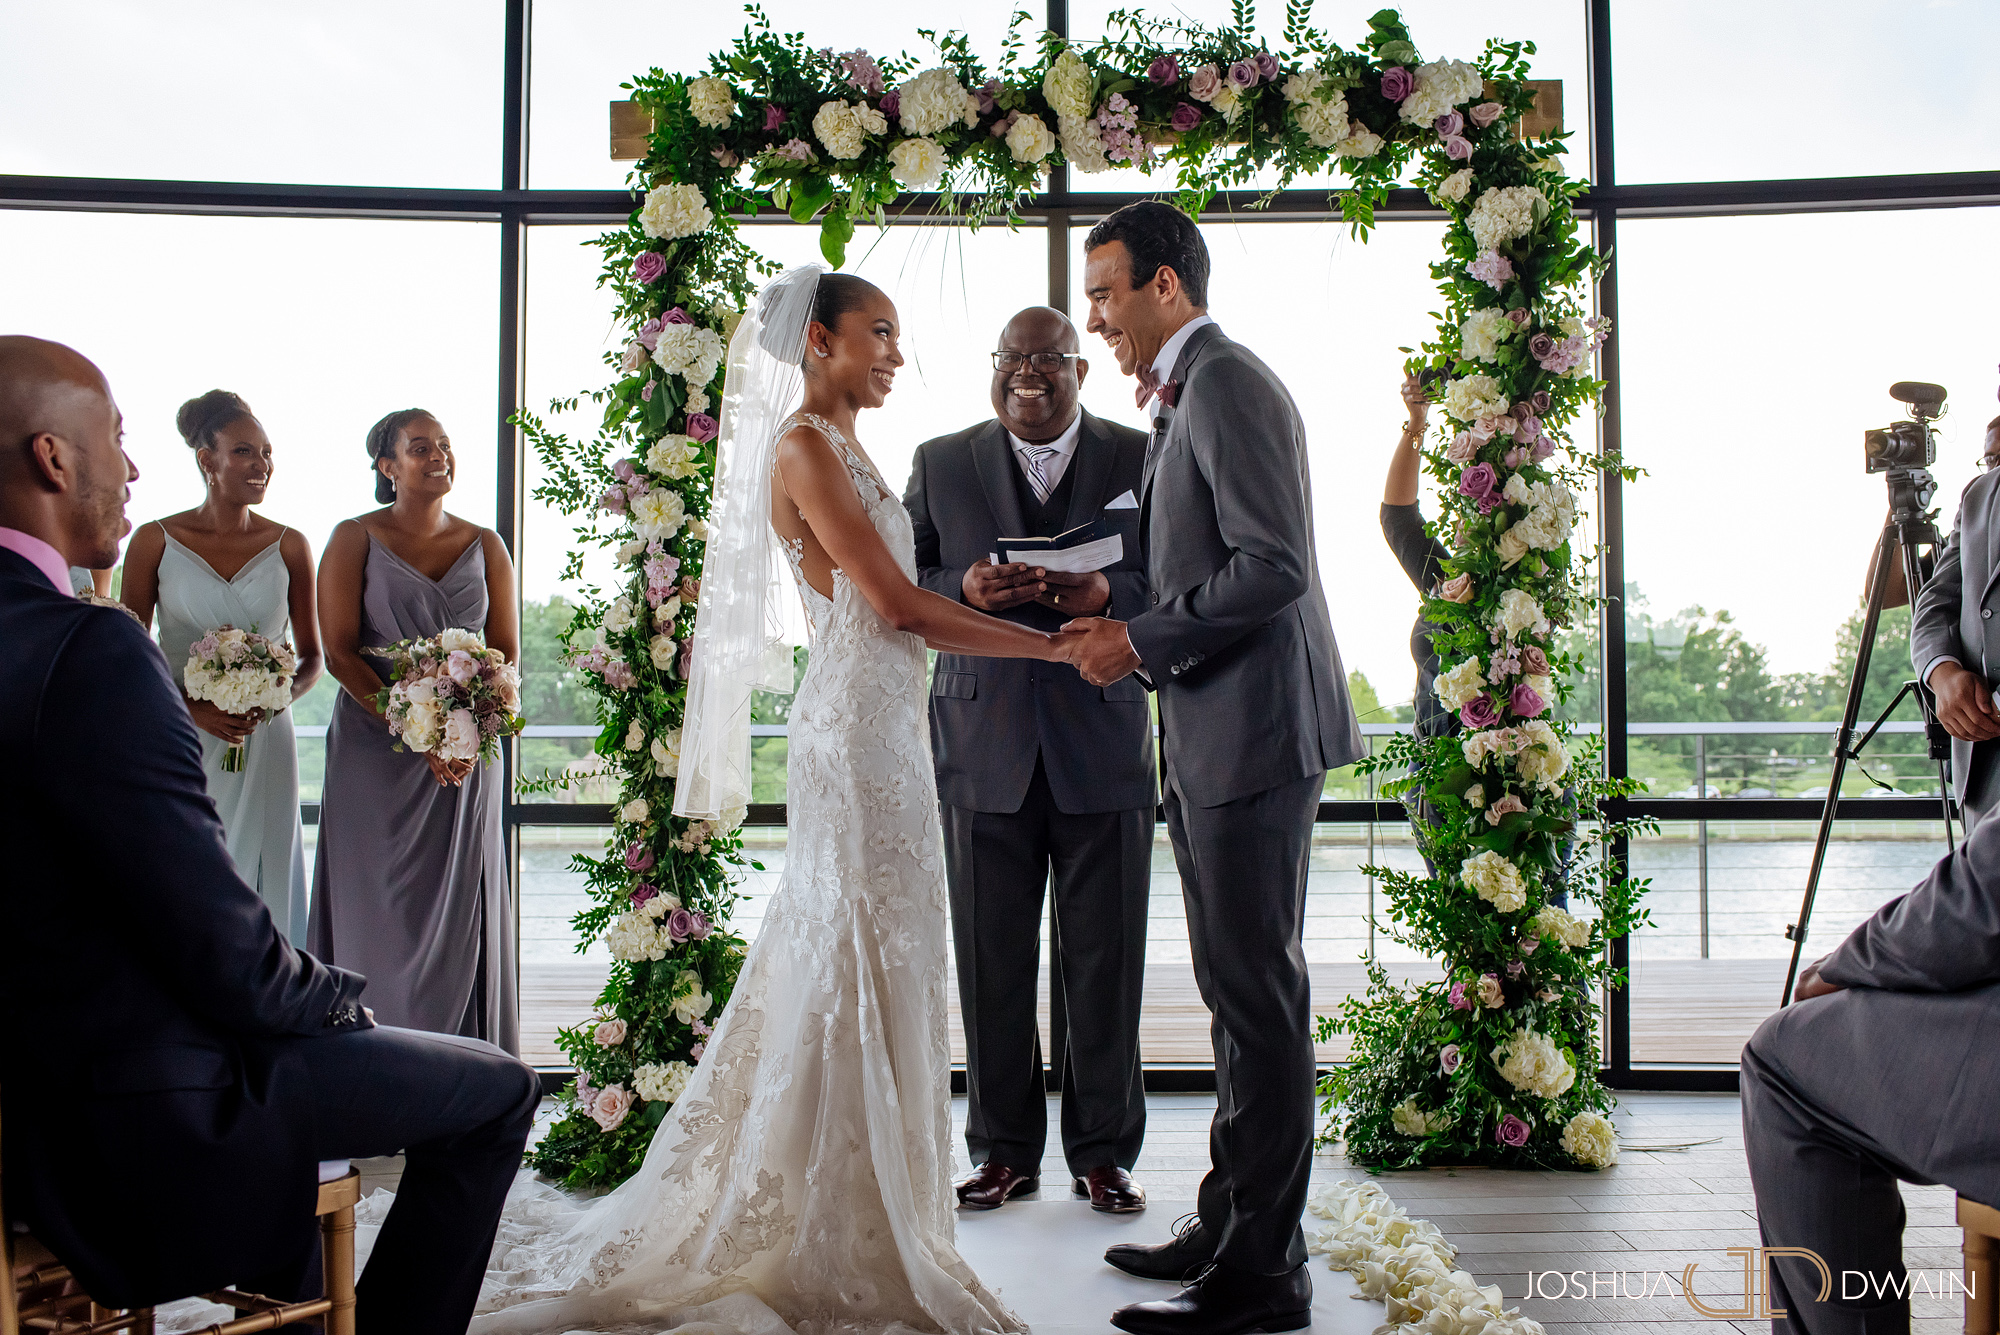 leshia-adam-022-dc-wharf-wedding-photos-joshua-dwain-photographer